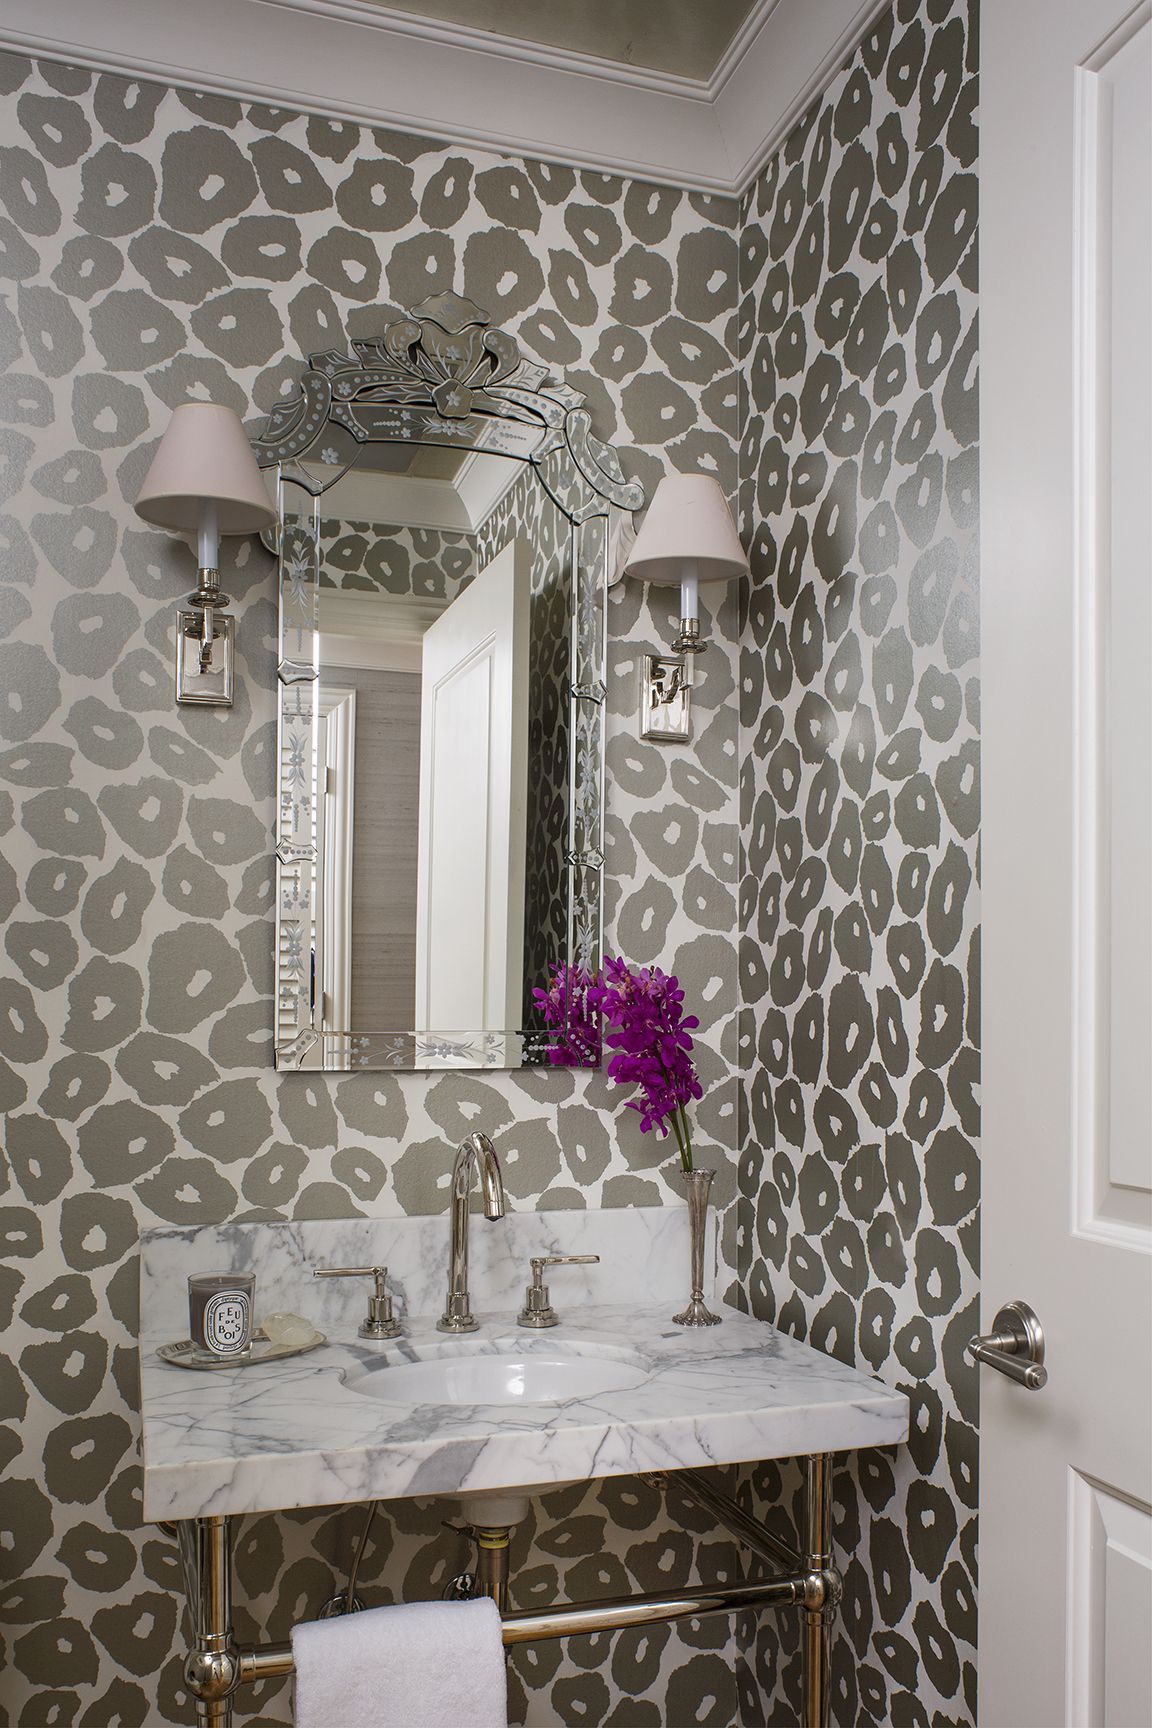 Glamorous Powder Room With Glossy Patterned Wall Paper Wendy Labrum Interiors Powder Room Wallpaper Bathroom Wallpaper Contemporary Modern Powder Rooms